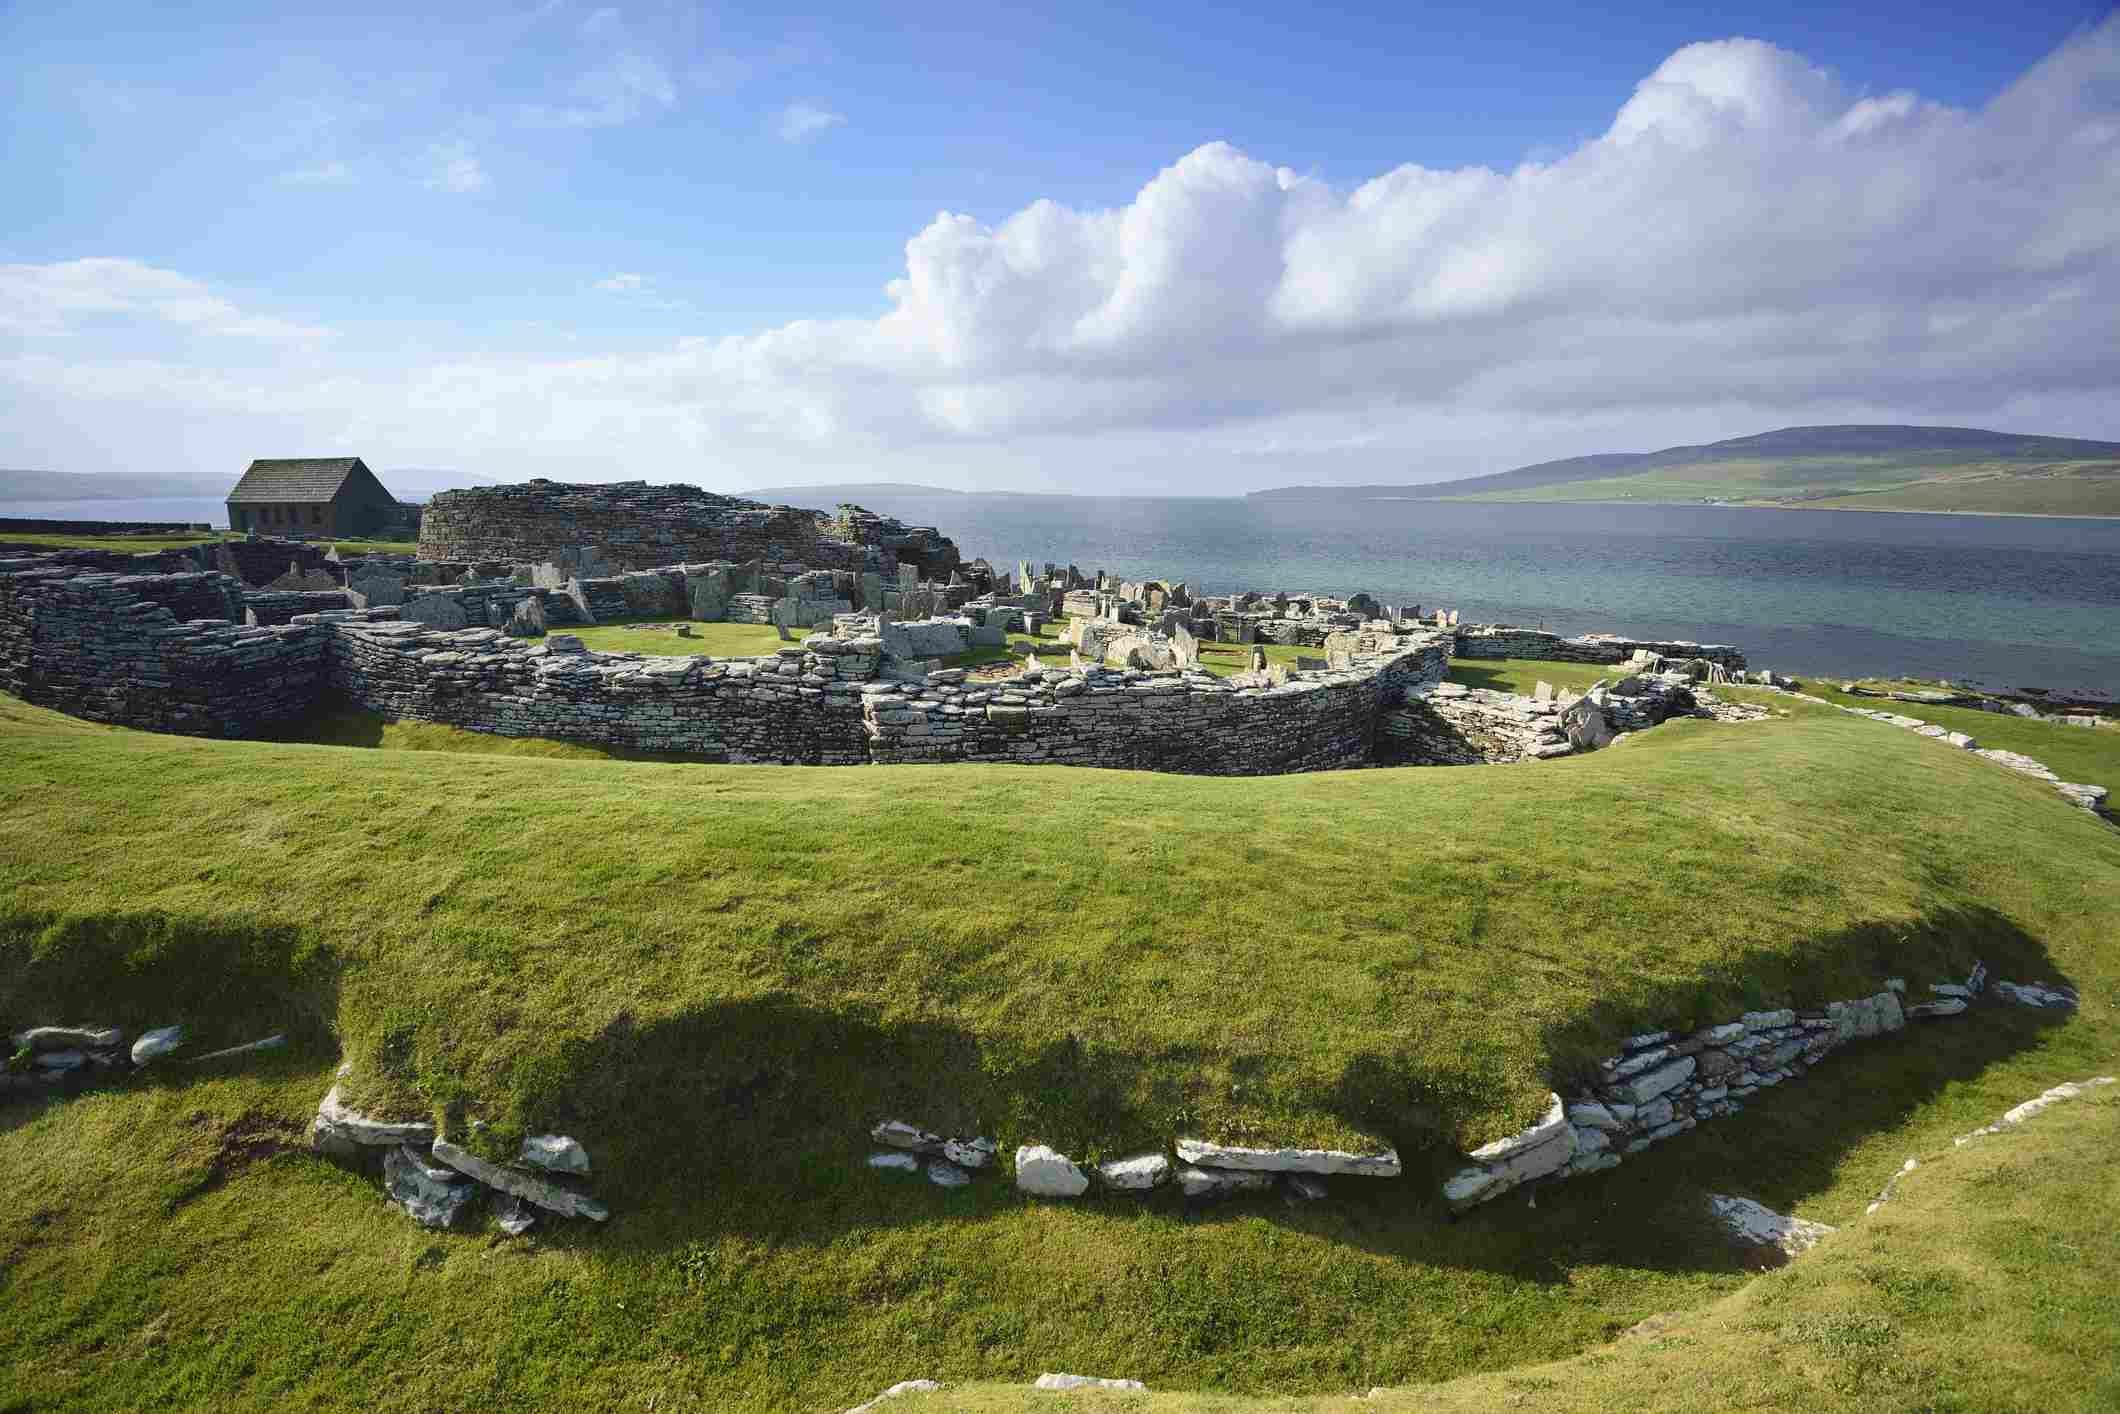 Neolithic settlement Broch of Gurness, Broch of Gurness, UNESCO World Heritage Site The Heart of Neolithic Orkney, Orkney Islands, Scotland, Great Britain, United Kingdom